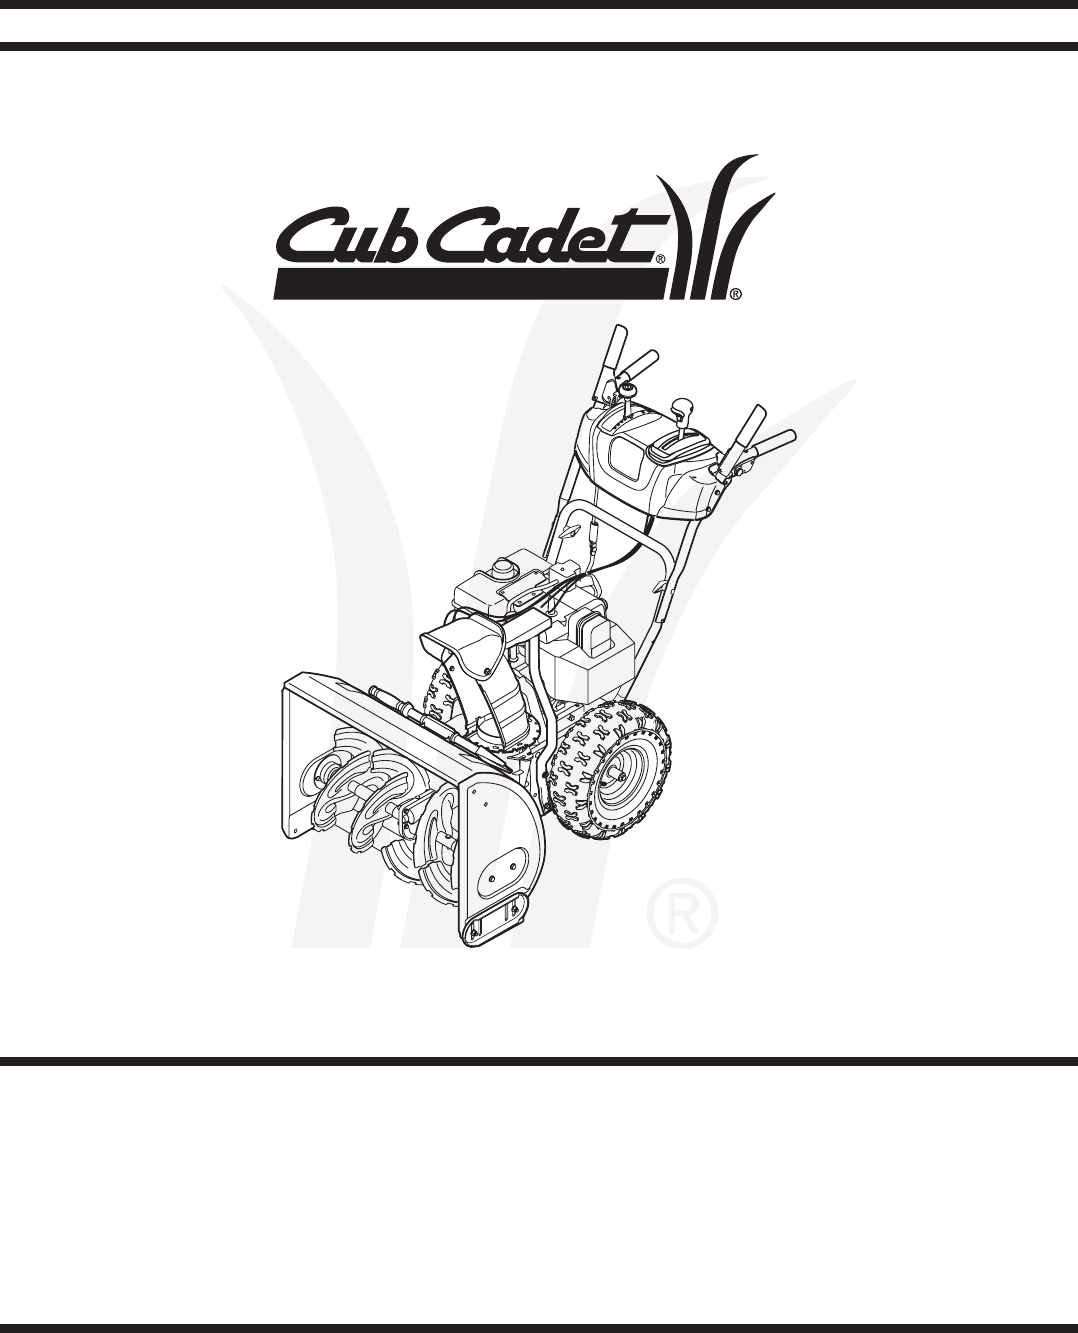 Cub Cadet Snow Blower Two Stage Snow Thrower User Guide